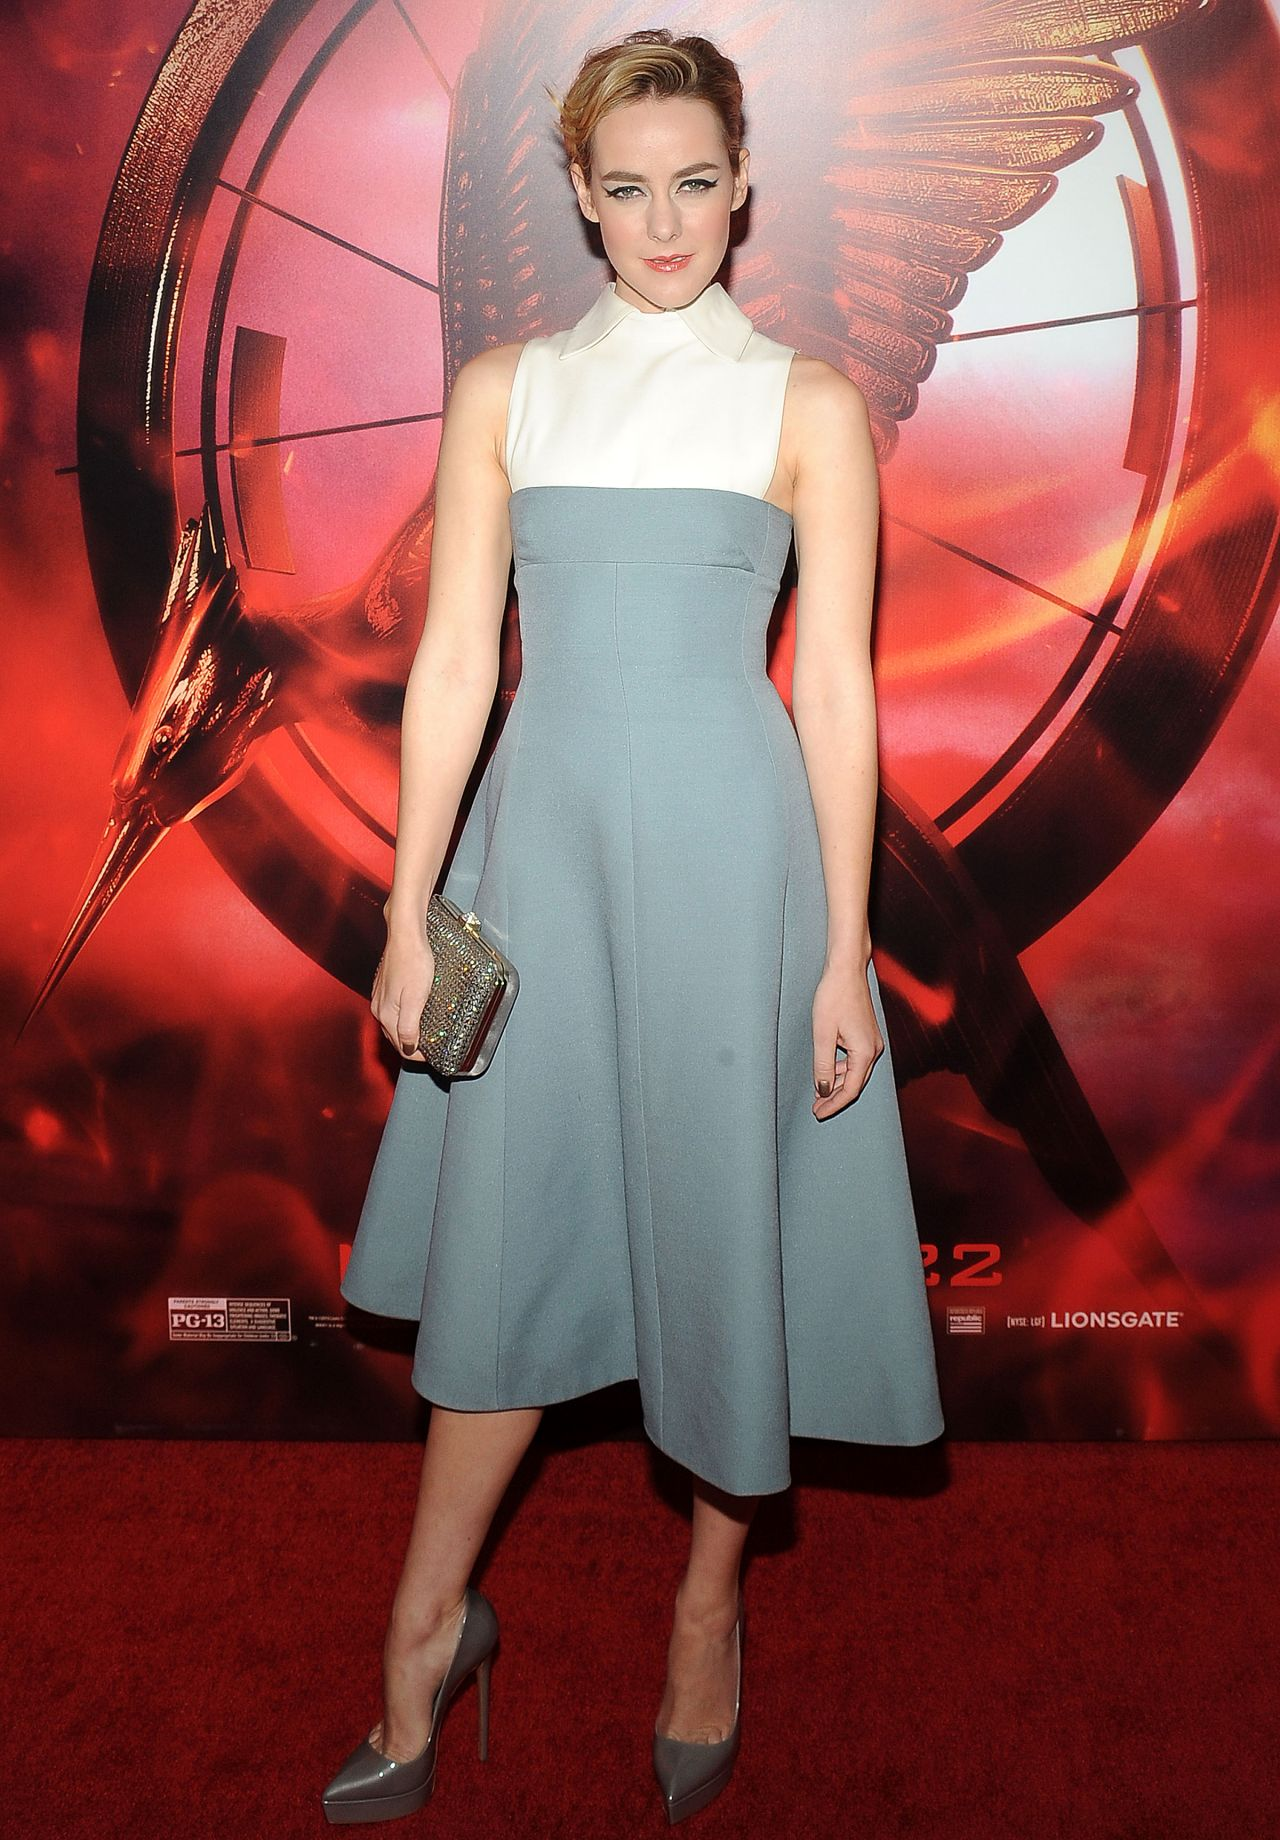 Jena Malone - THE HUNGER GAMES: CATCHING FIRE Premiere in New York City